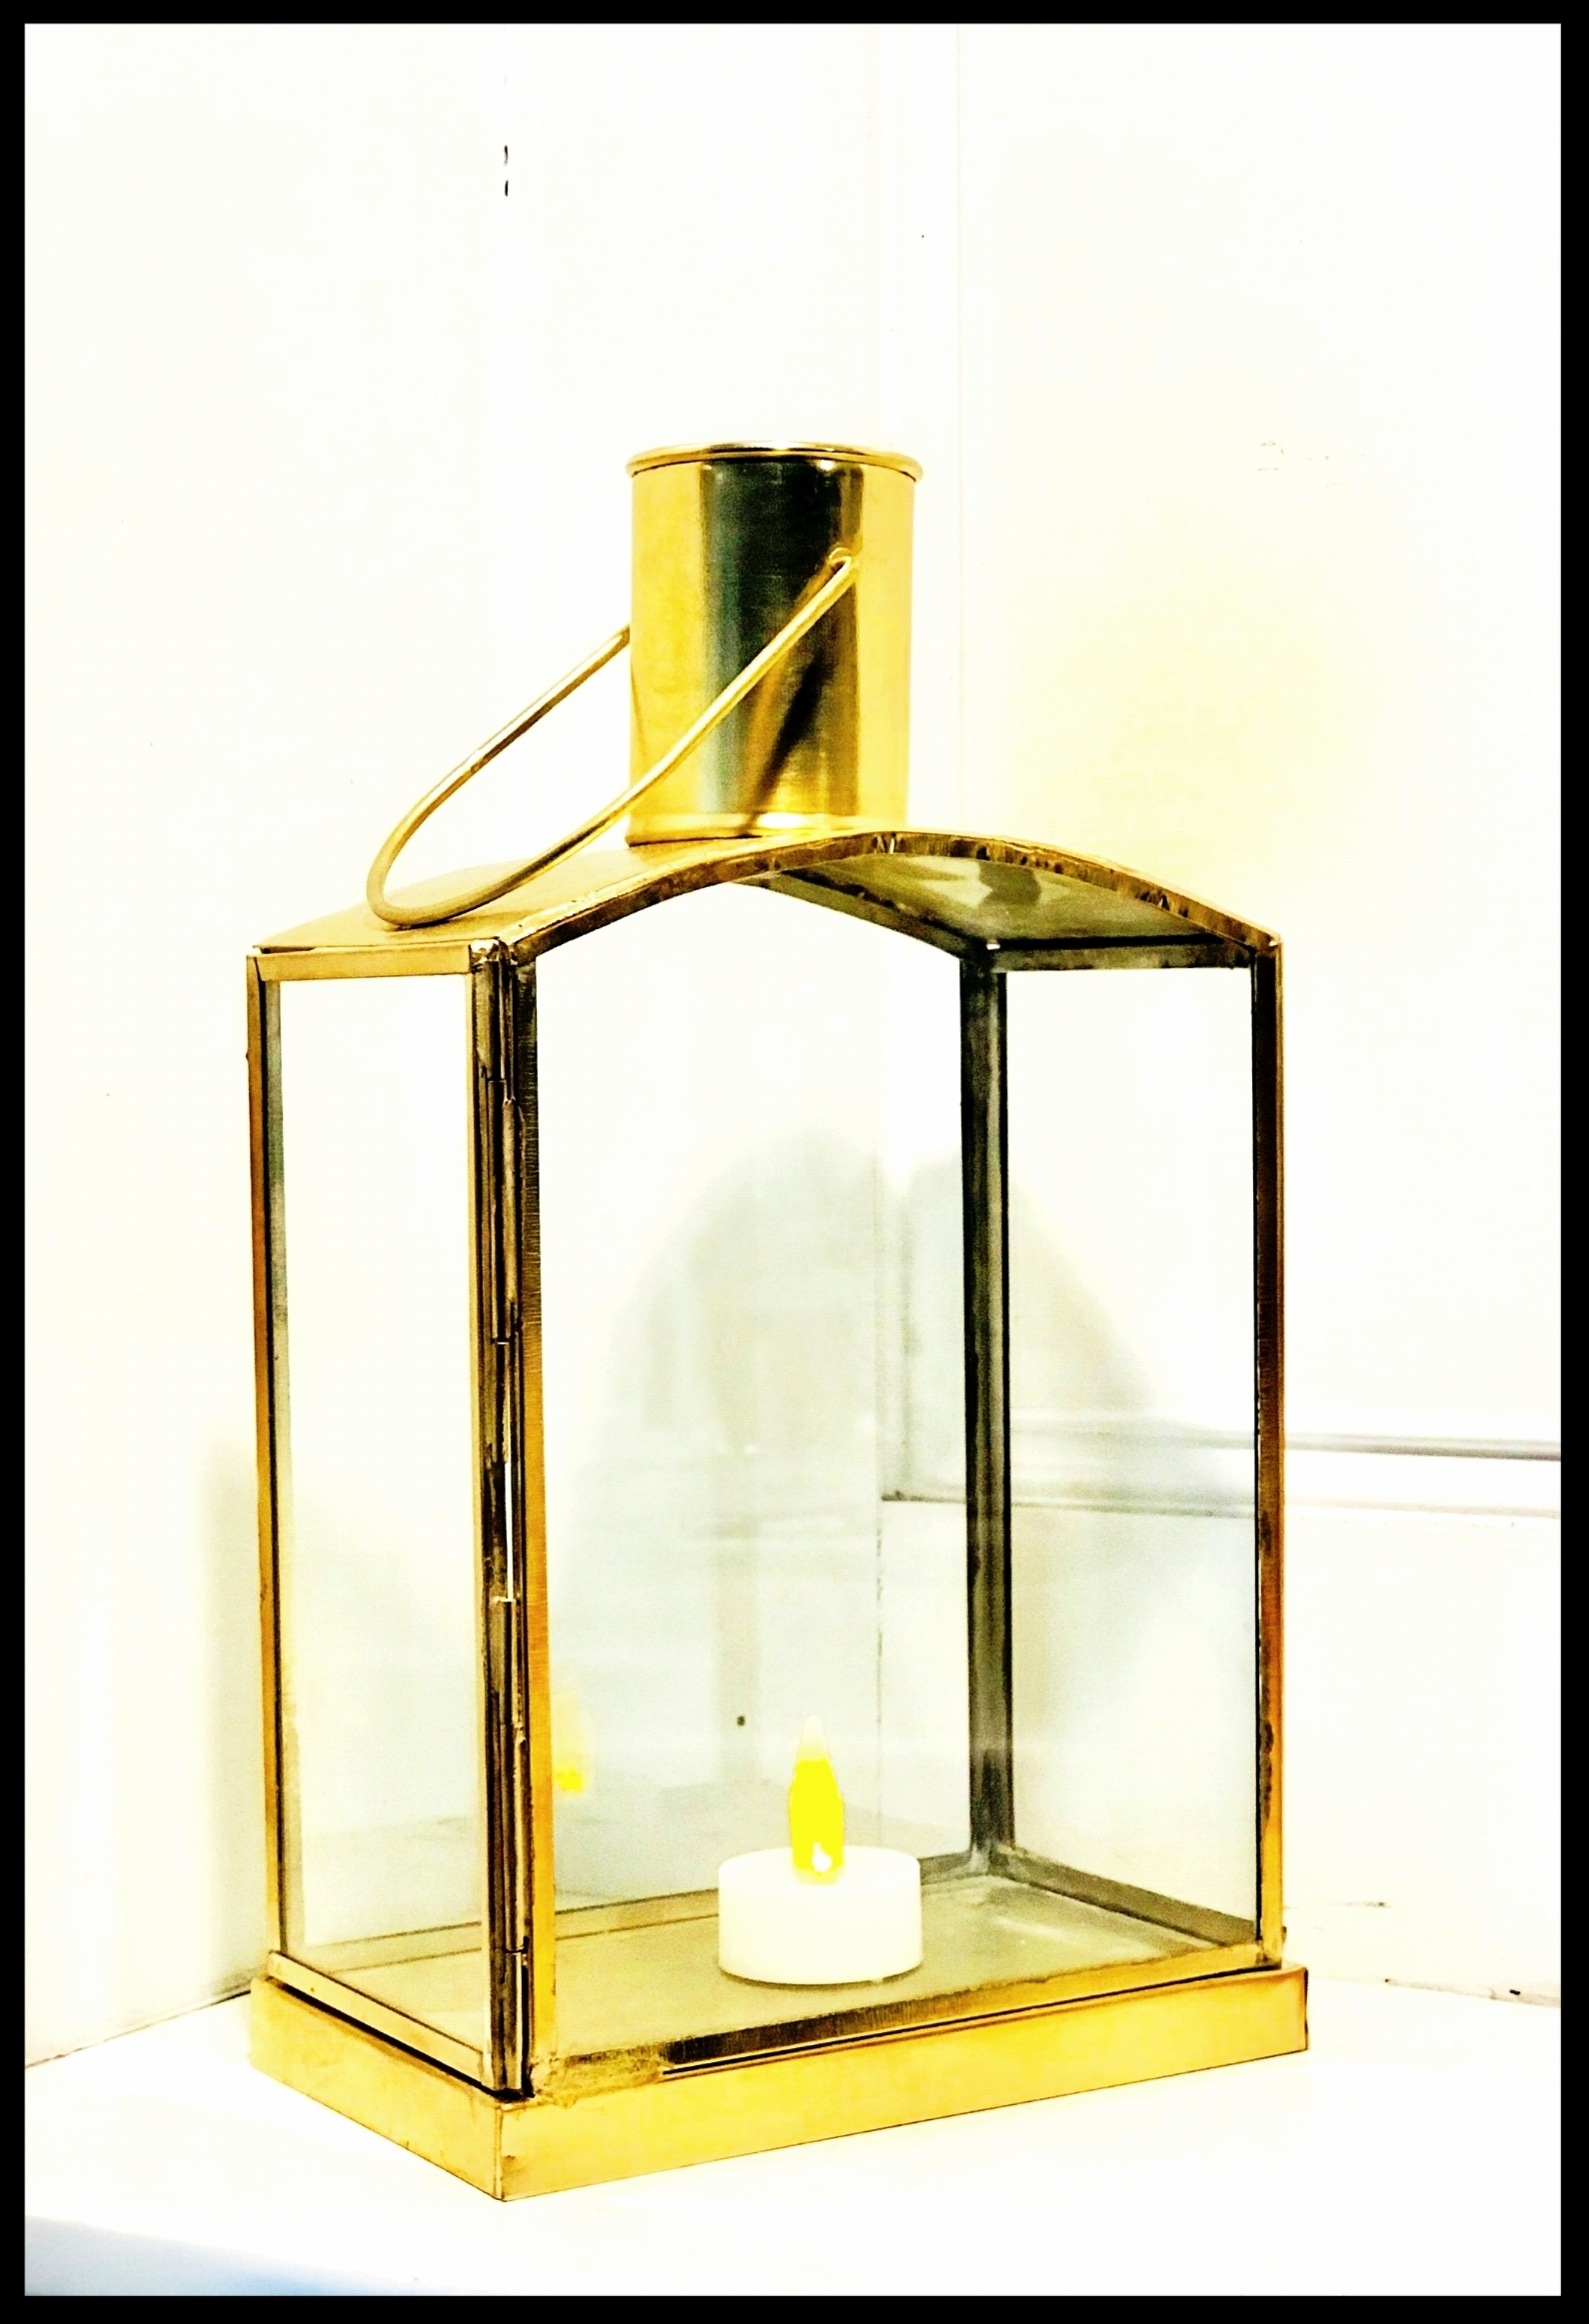 Gold Lantern with Glass Sides